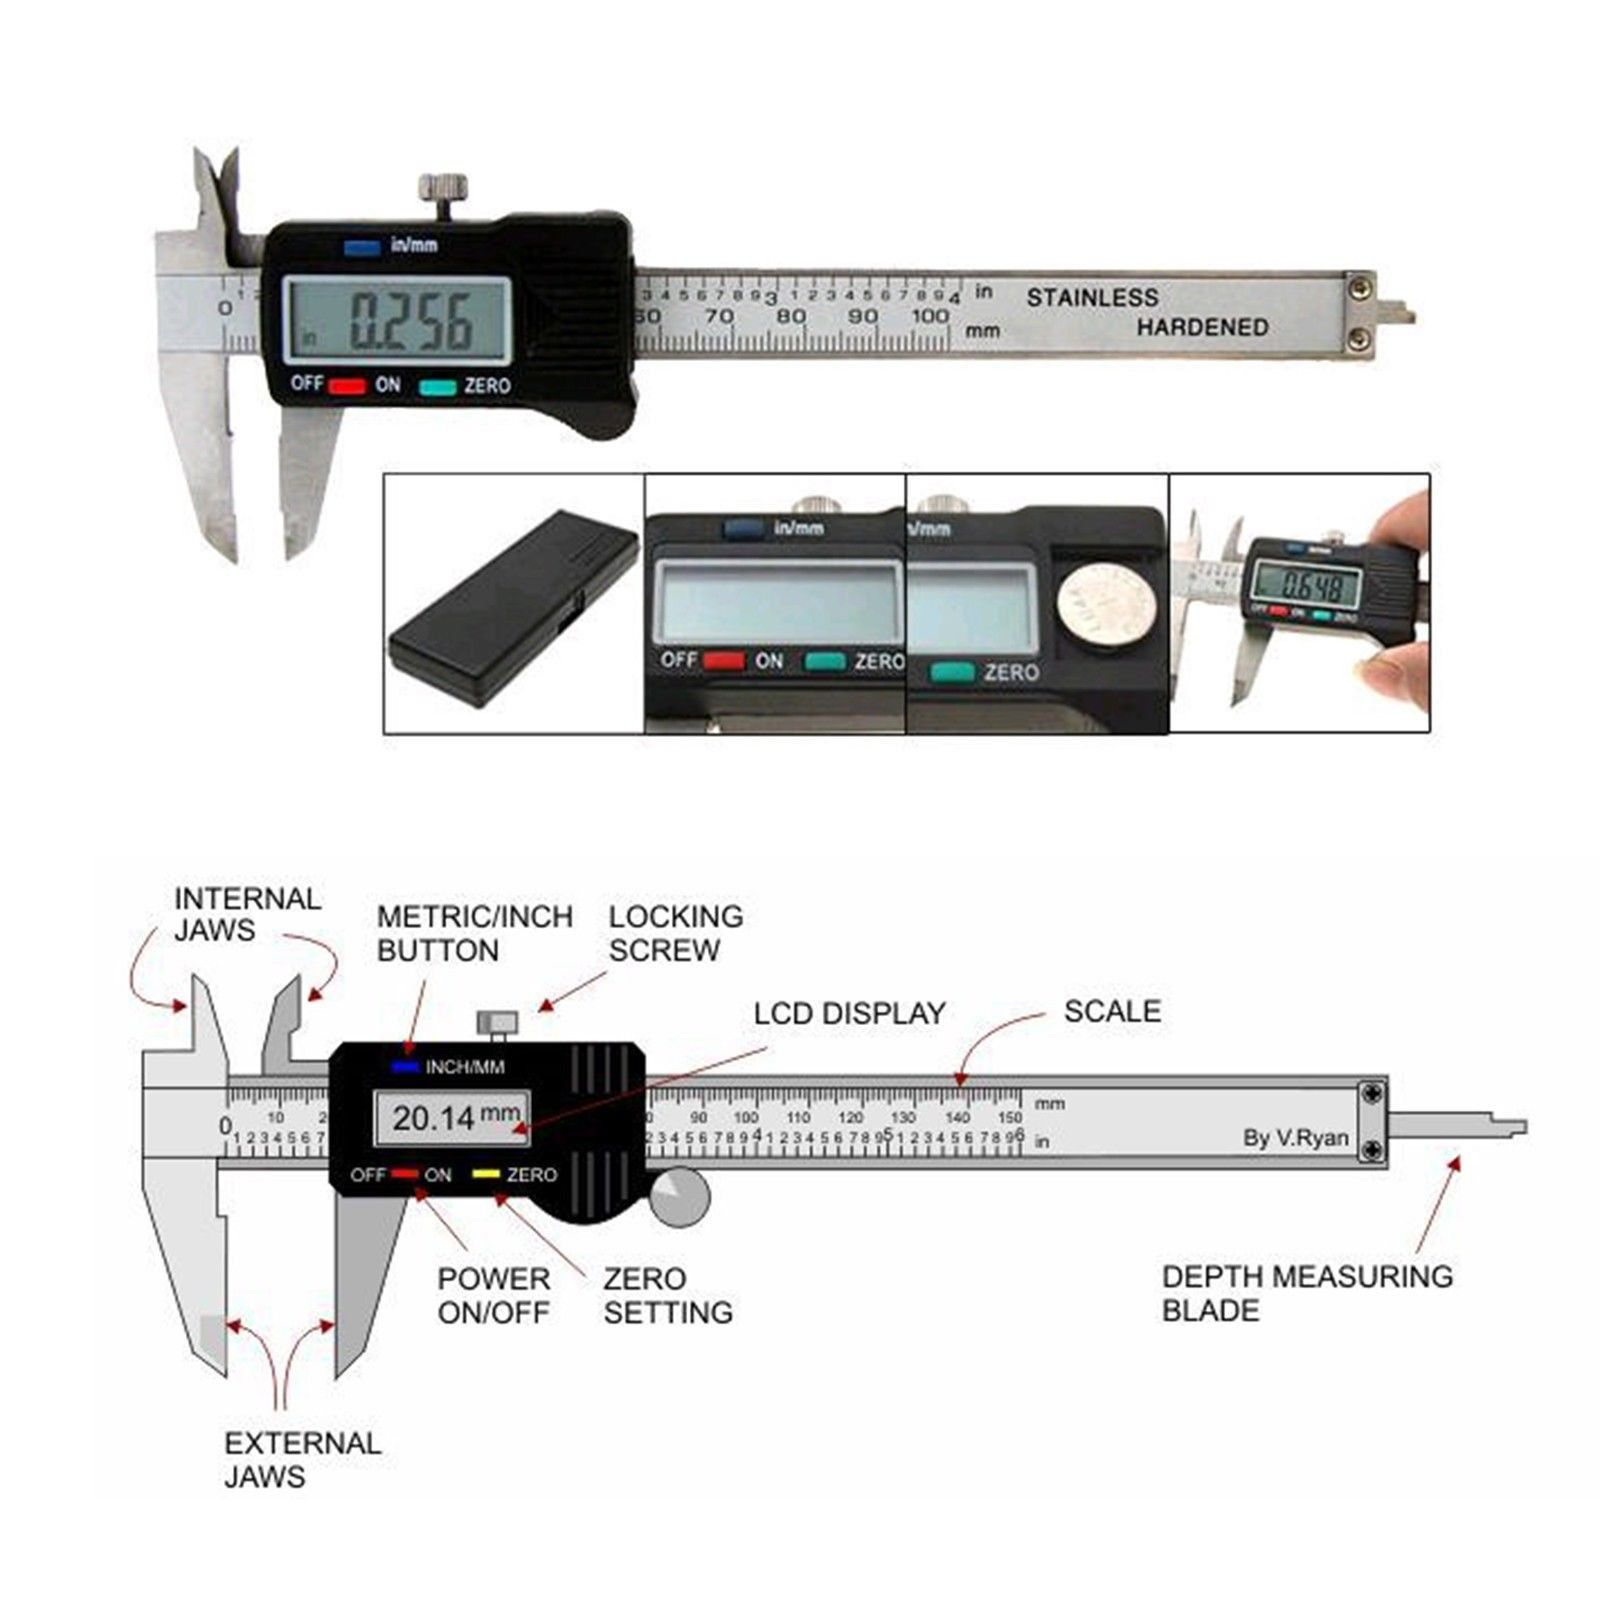 hight resolution of lcd electronic digital gauge stainless vernier caliper 150mm 6 inch micrometer